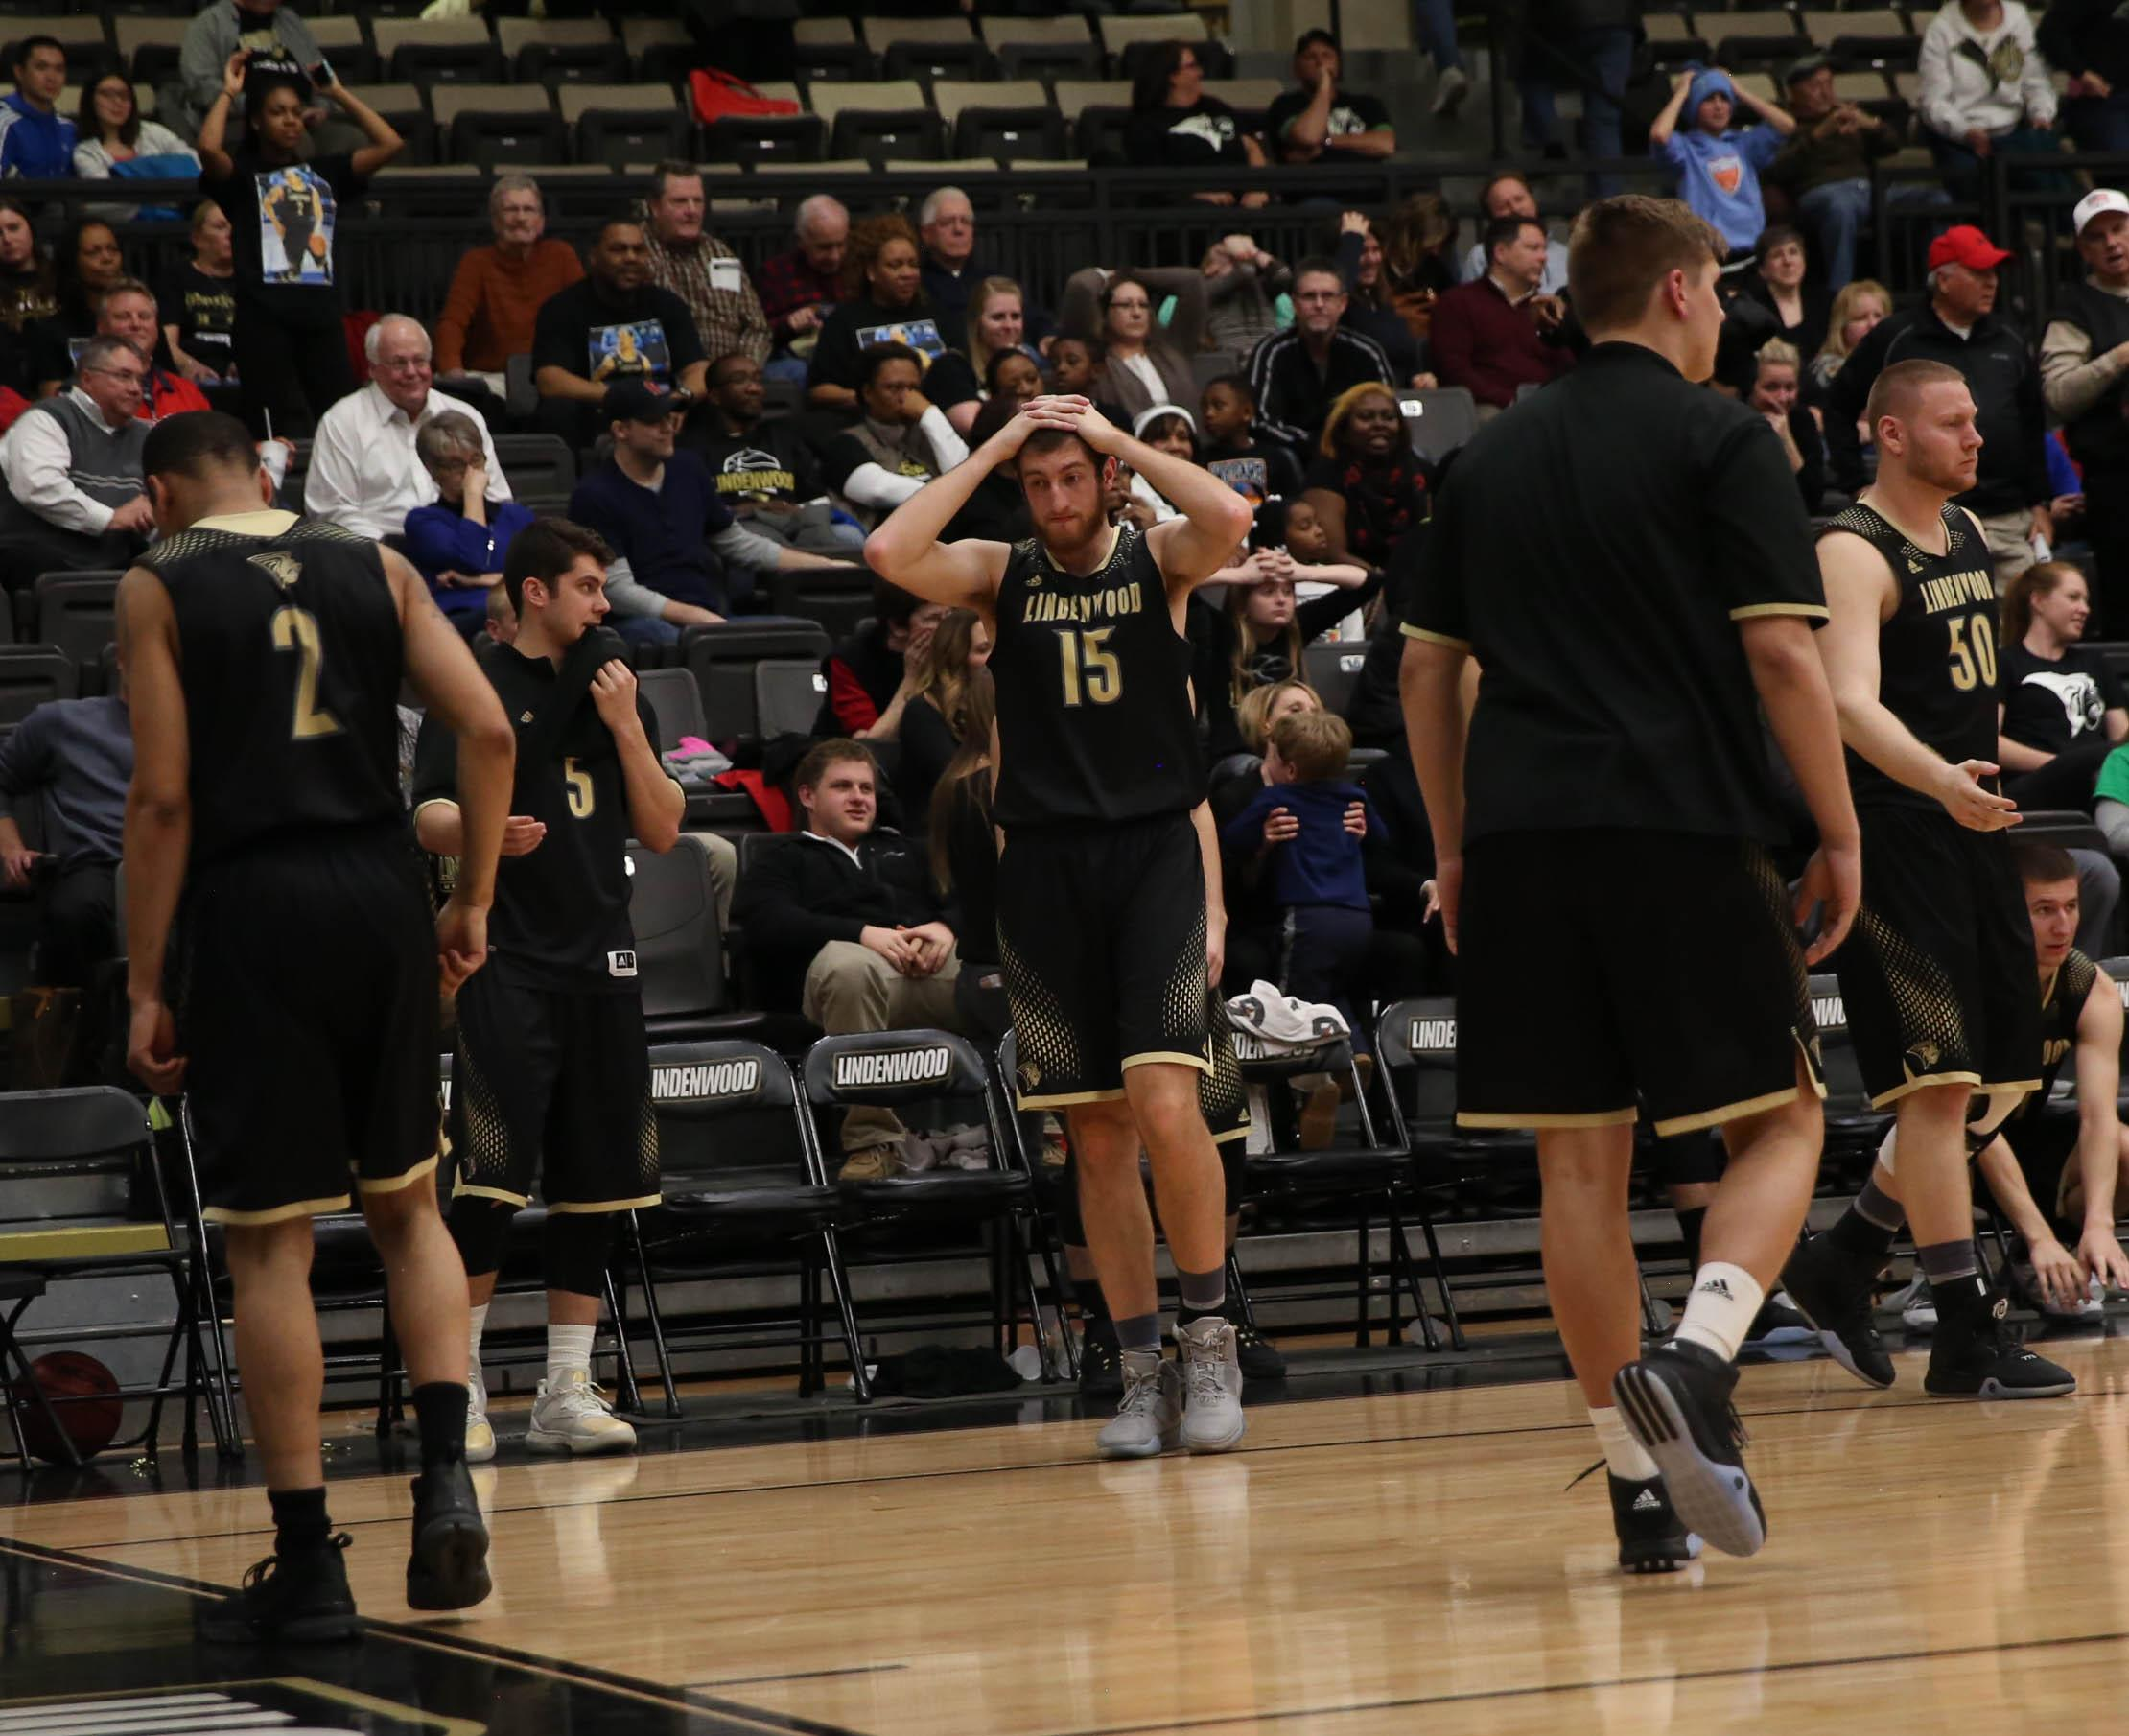 Rayko Dundalov holds his head in disbelief following the men's basketball team's 59-58 loss to UCM.   Photo by Carly Fristoe